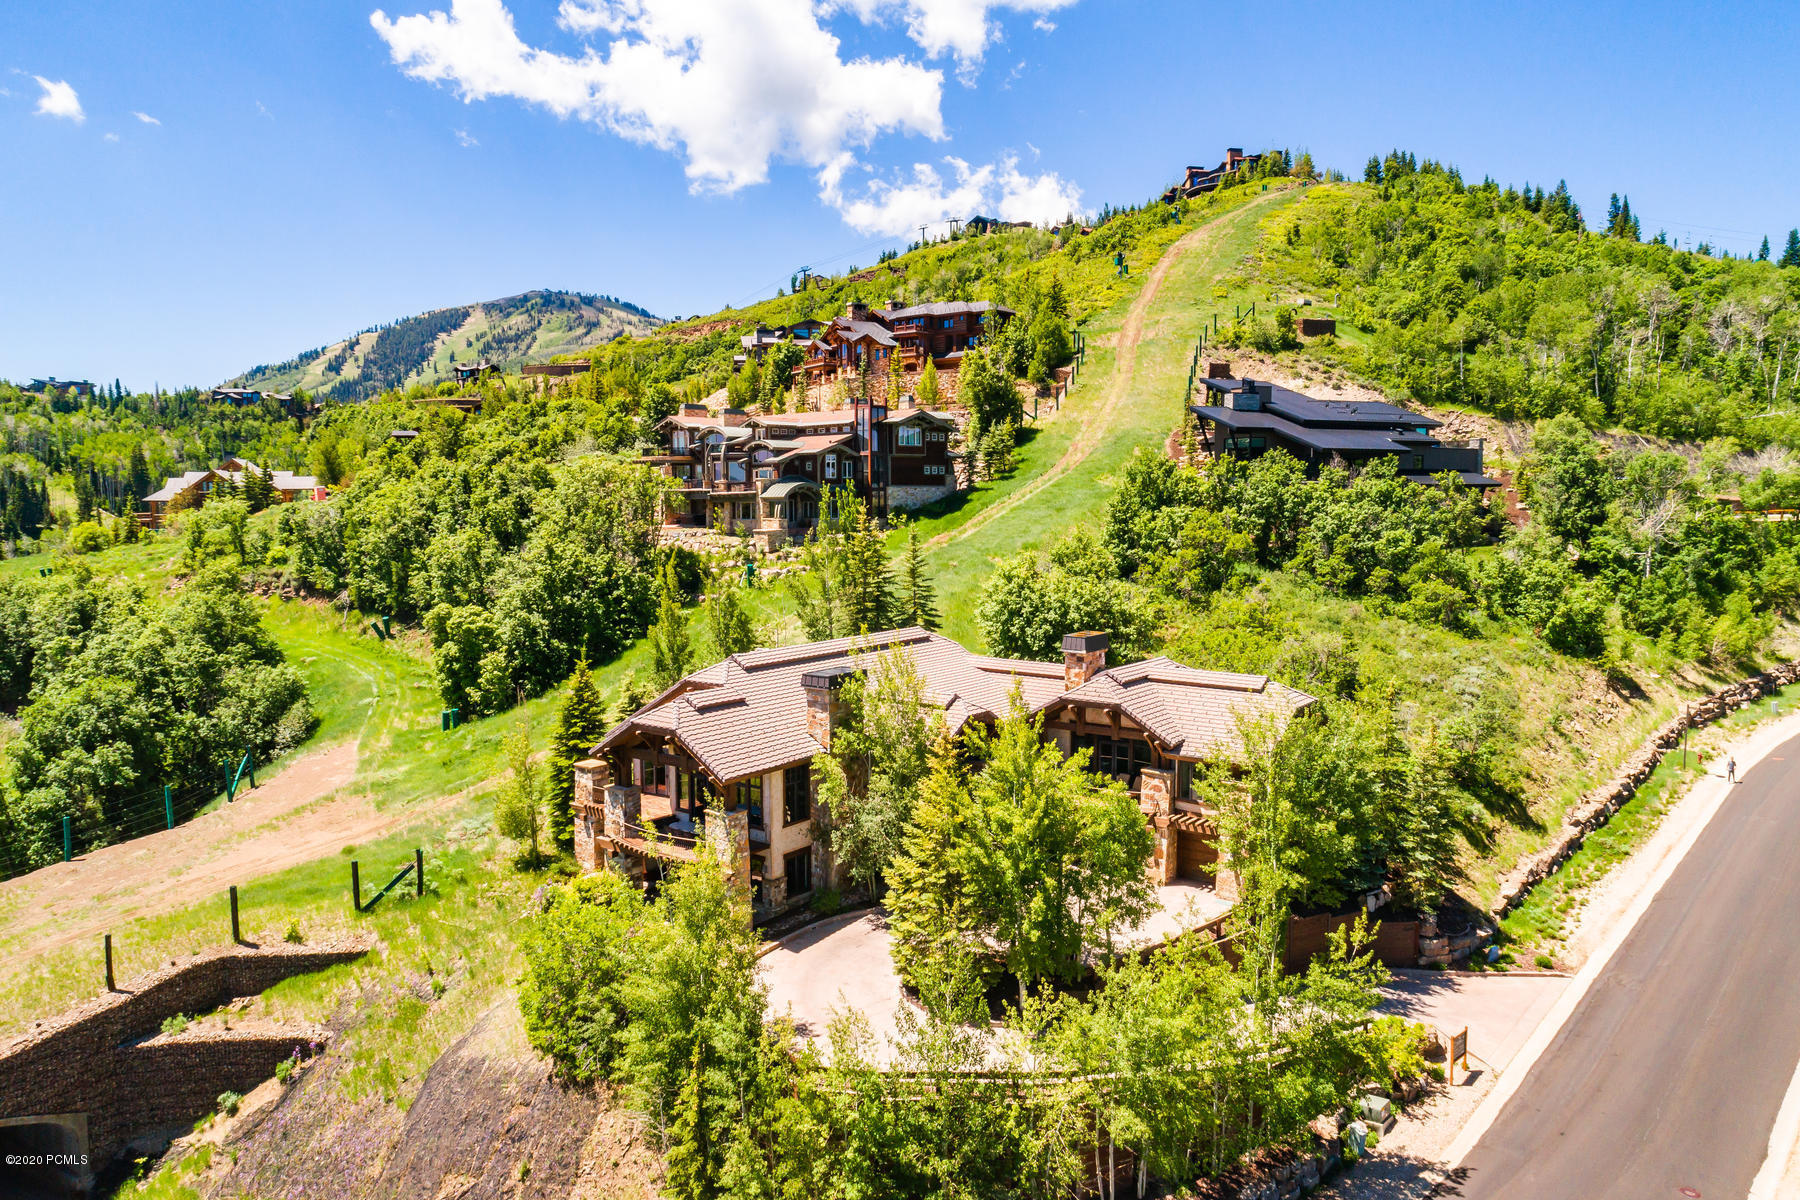 3313 Deer Crest Estates Drive, Park City, Utah 84060, 5 Bedrooms Bedrooms, ,6 BathroomsBathrooms,Single Family,For Sale,Deer Crest Estates,20190109112430415765000000